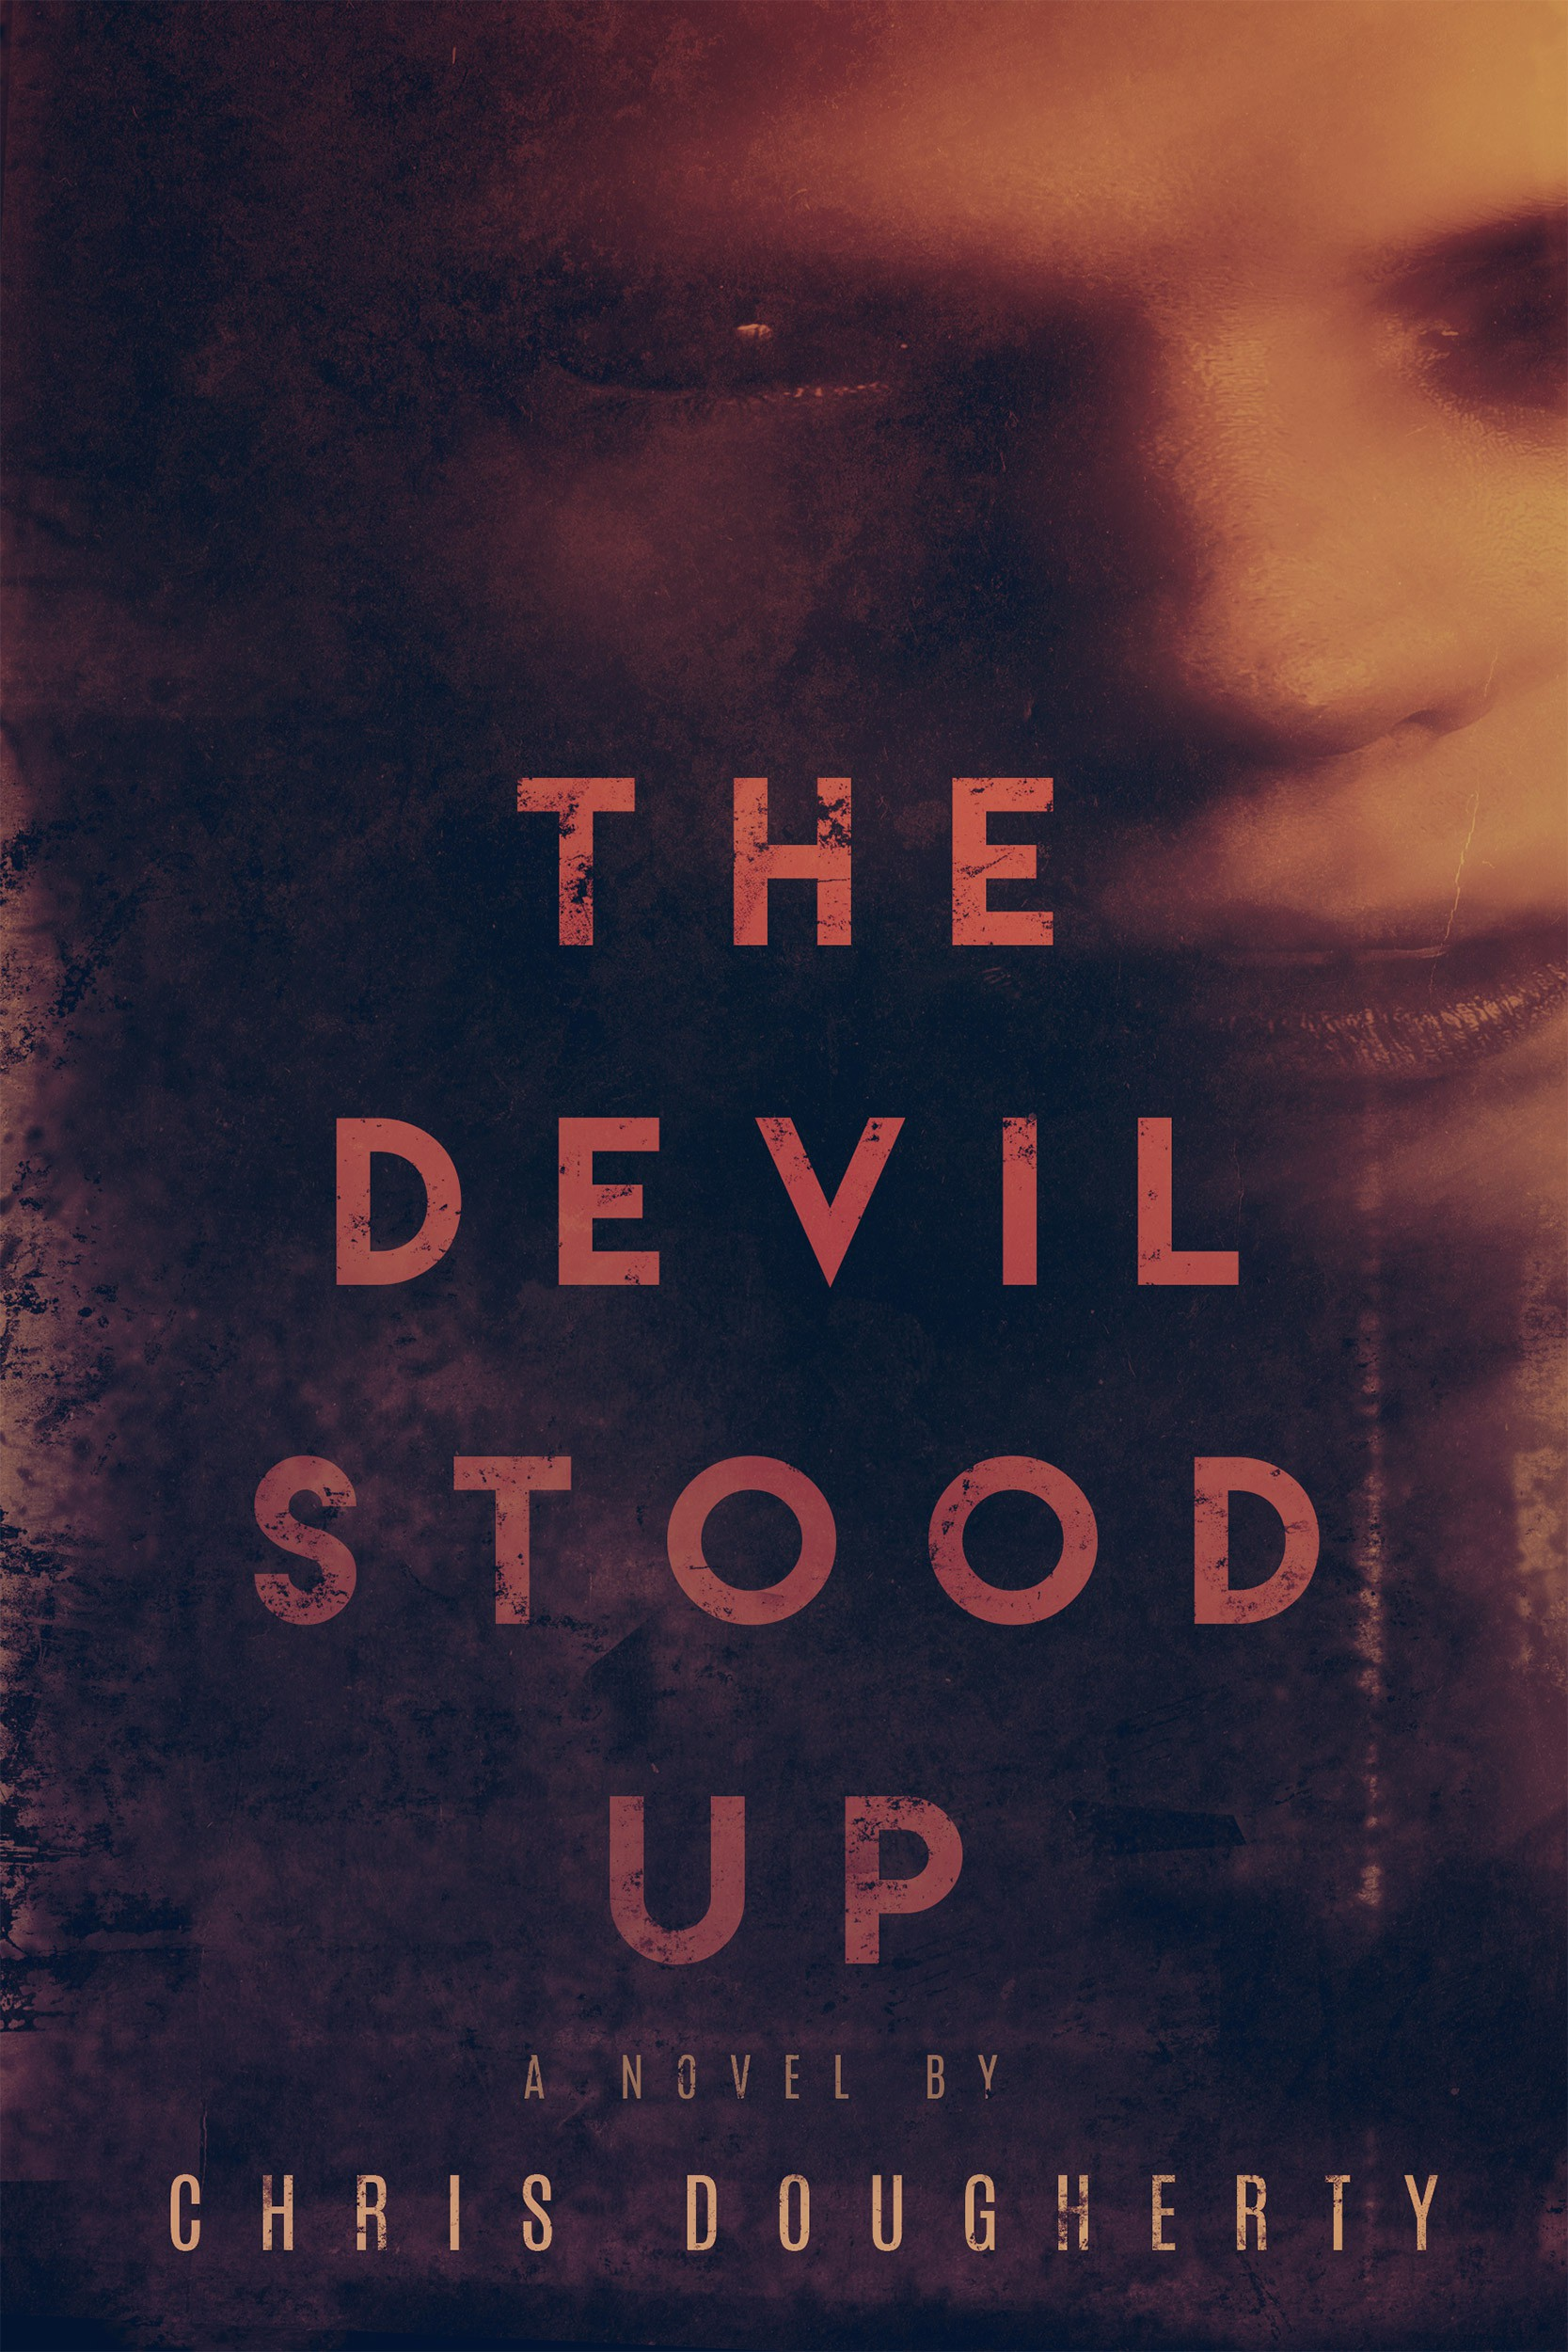 Bring the Devil to life on a book cover